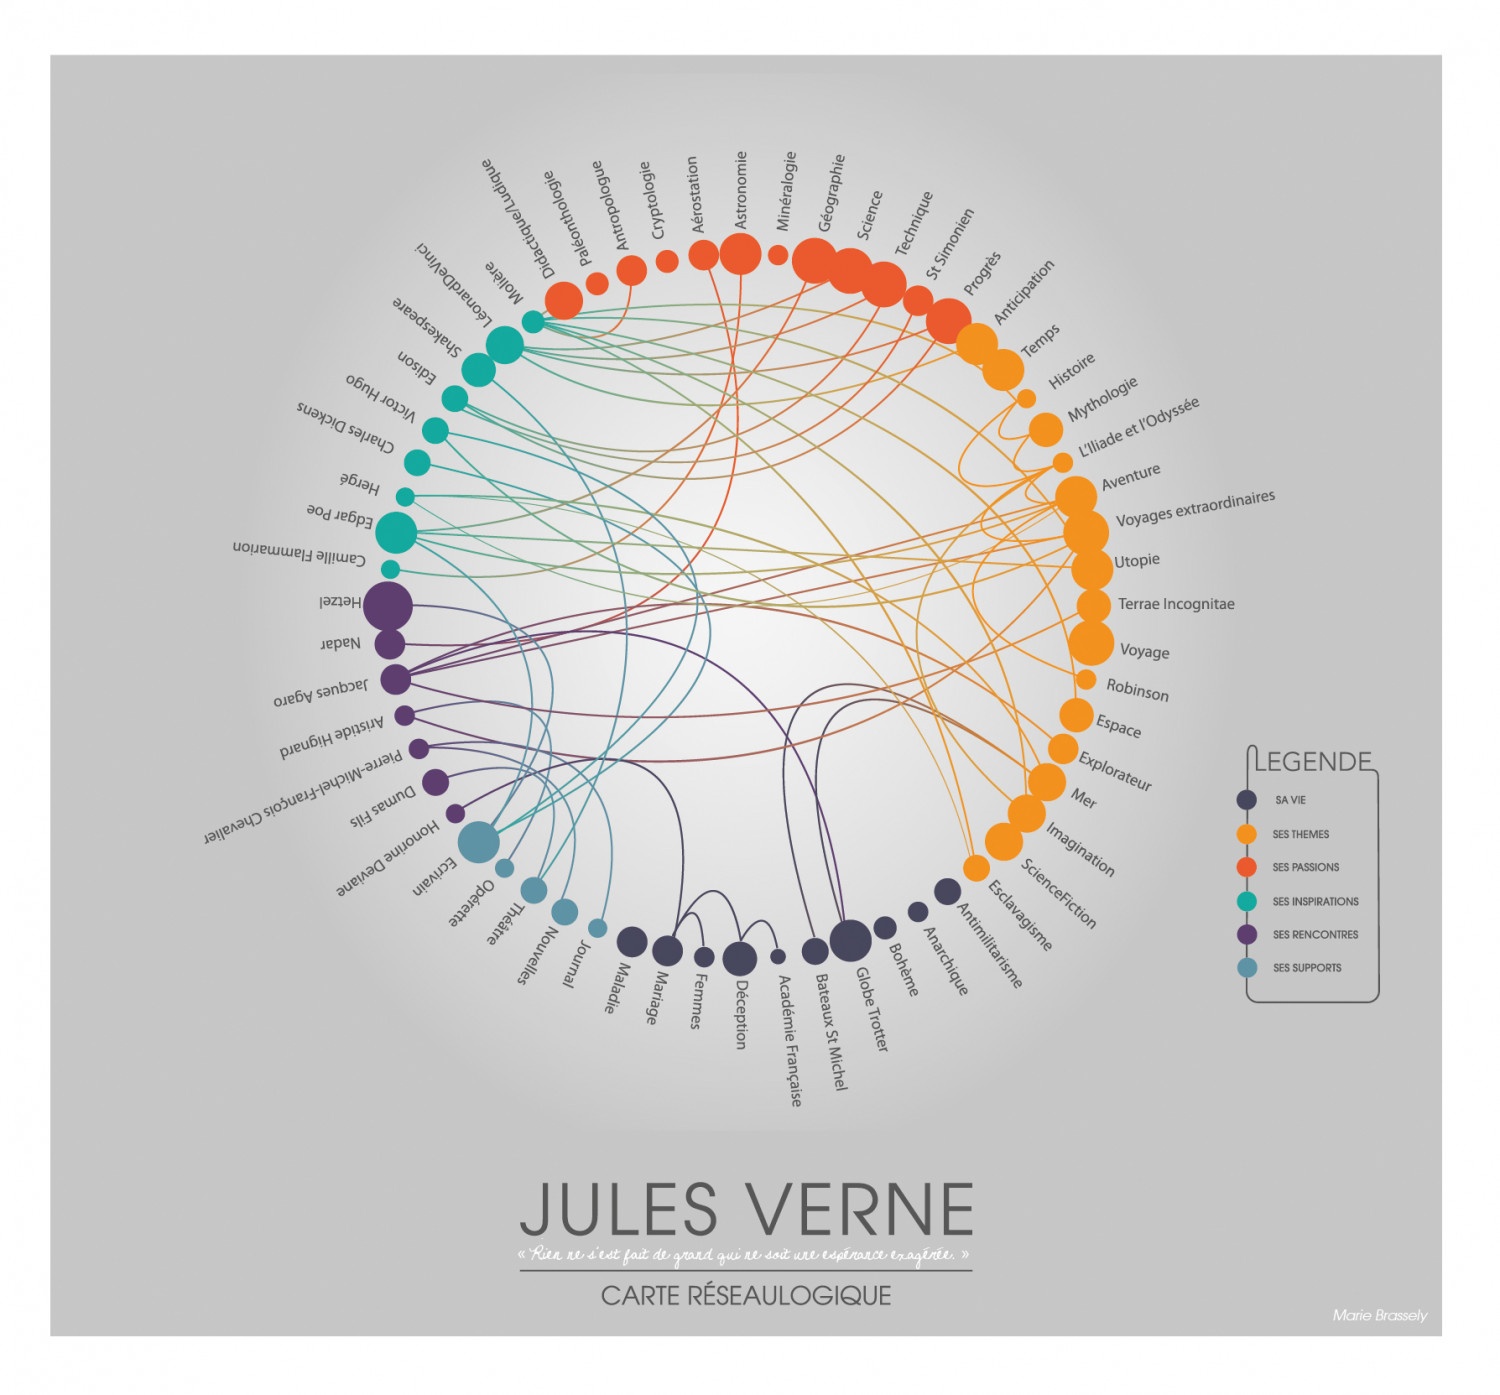 Jules Verne,  NetworkGraphy Map Infographic